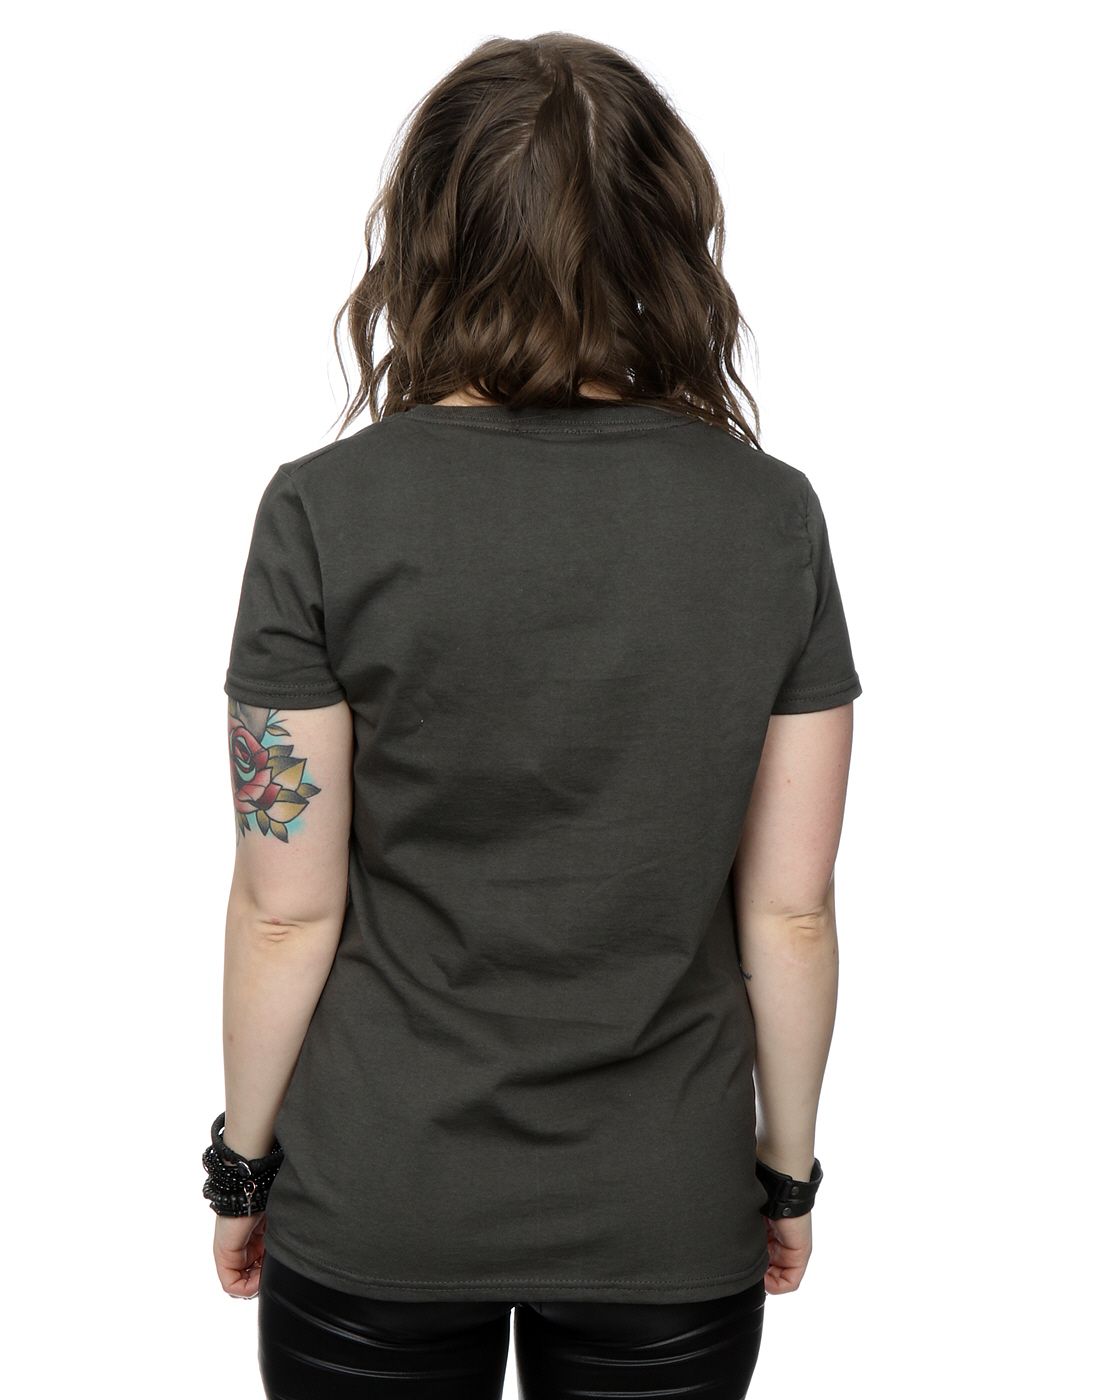 Rolling stones women 39 s distressed tongue t shirt ebay for How to make a distressed shirt